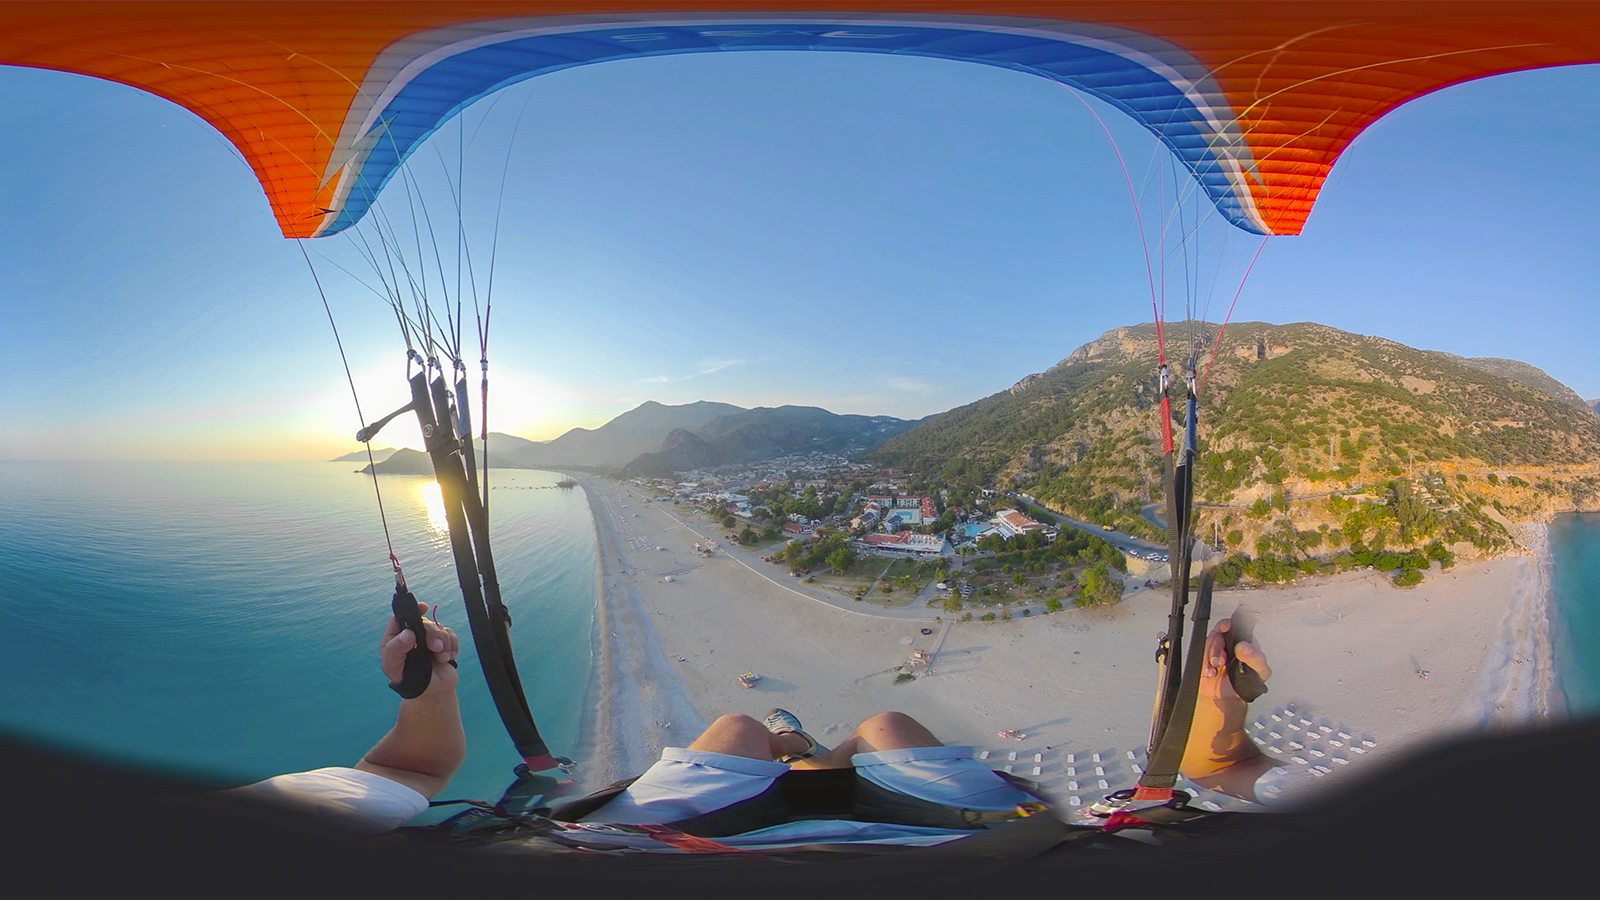 Paragliding at Sunset in Turkey